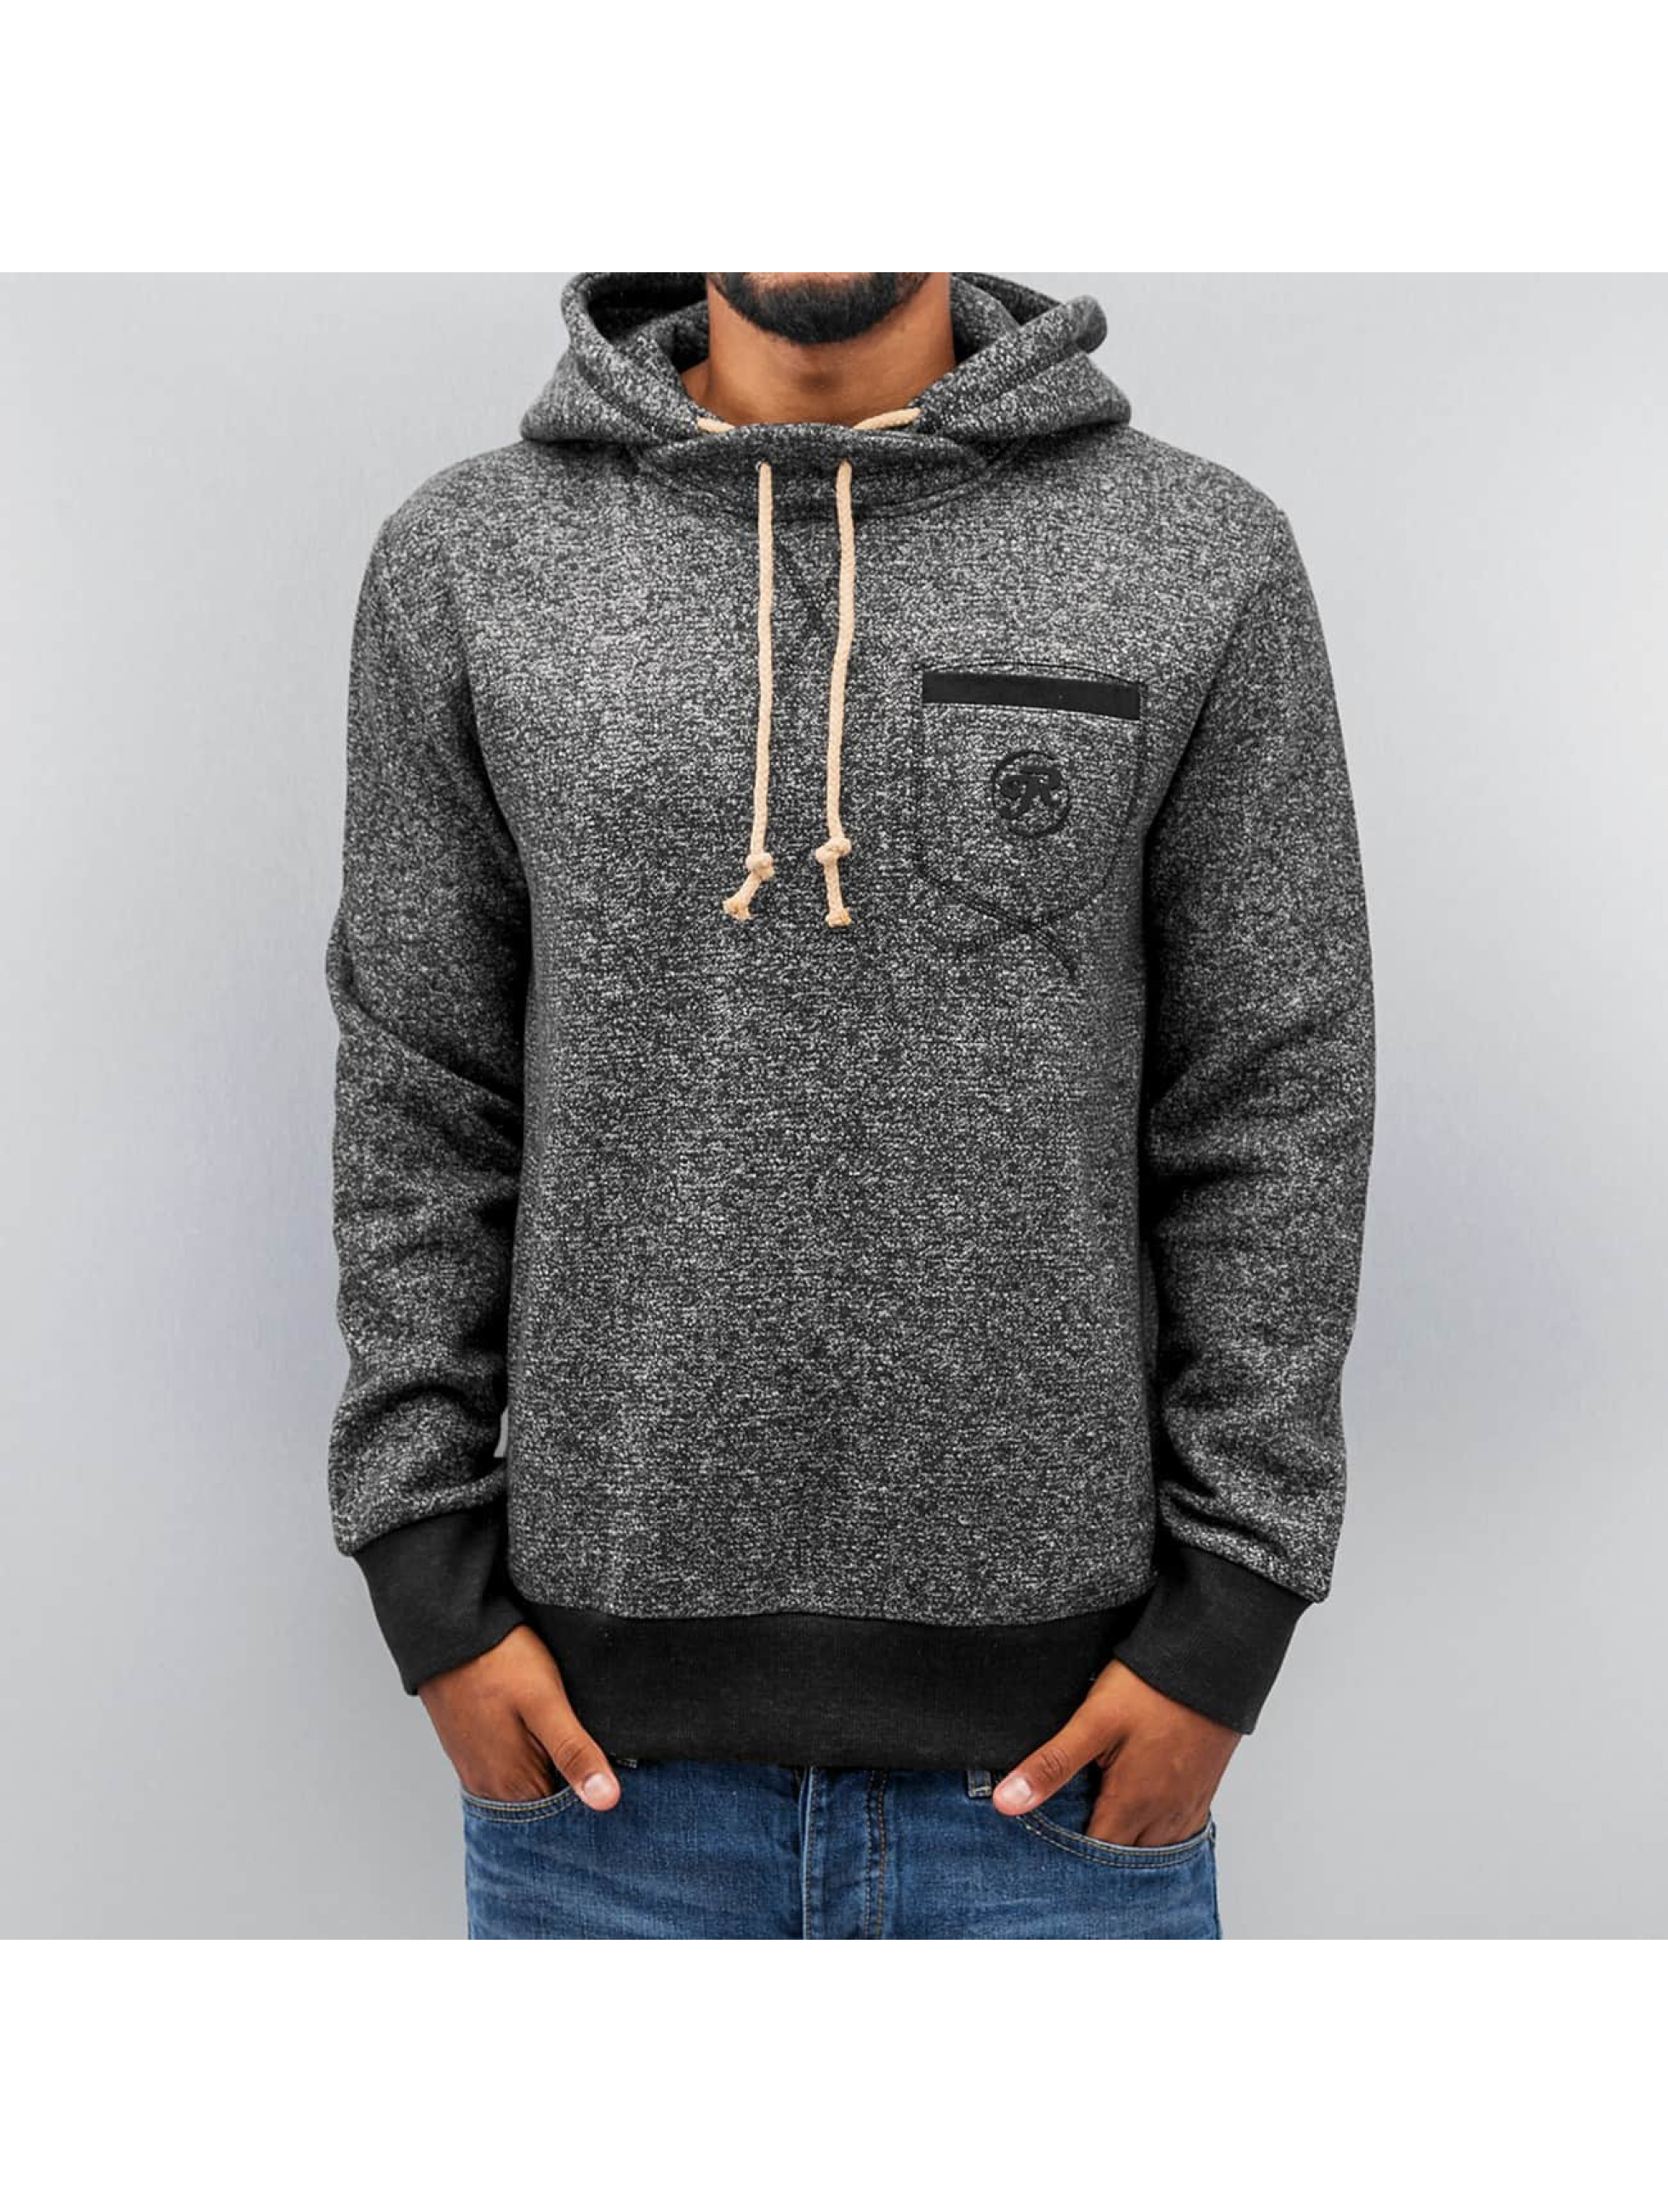 Just Rhyse Breast Pocket Hoody Black Melange Sale Angebote Hosena